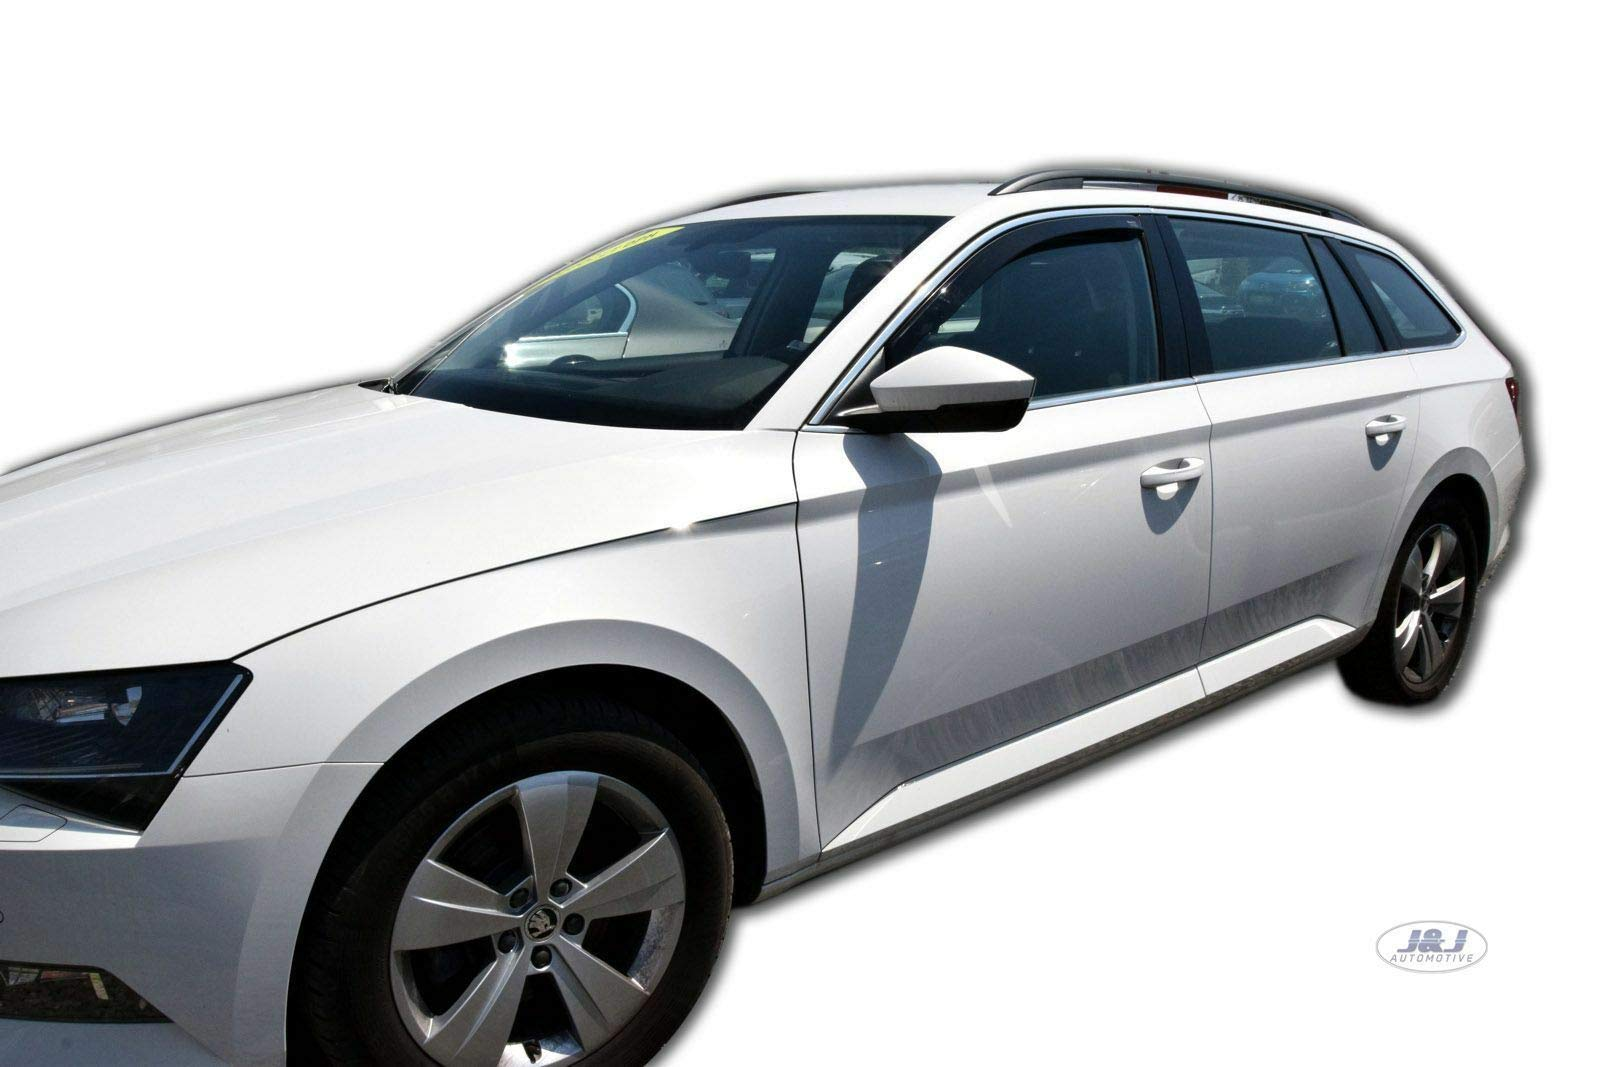 J&J AUTOMOTIVE Windabweiser Regenabweiser für Skoda SUPERB III Kombi ab 2015 2tlg HEKO dunkel von J&J AUTOMOTIVE